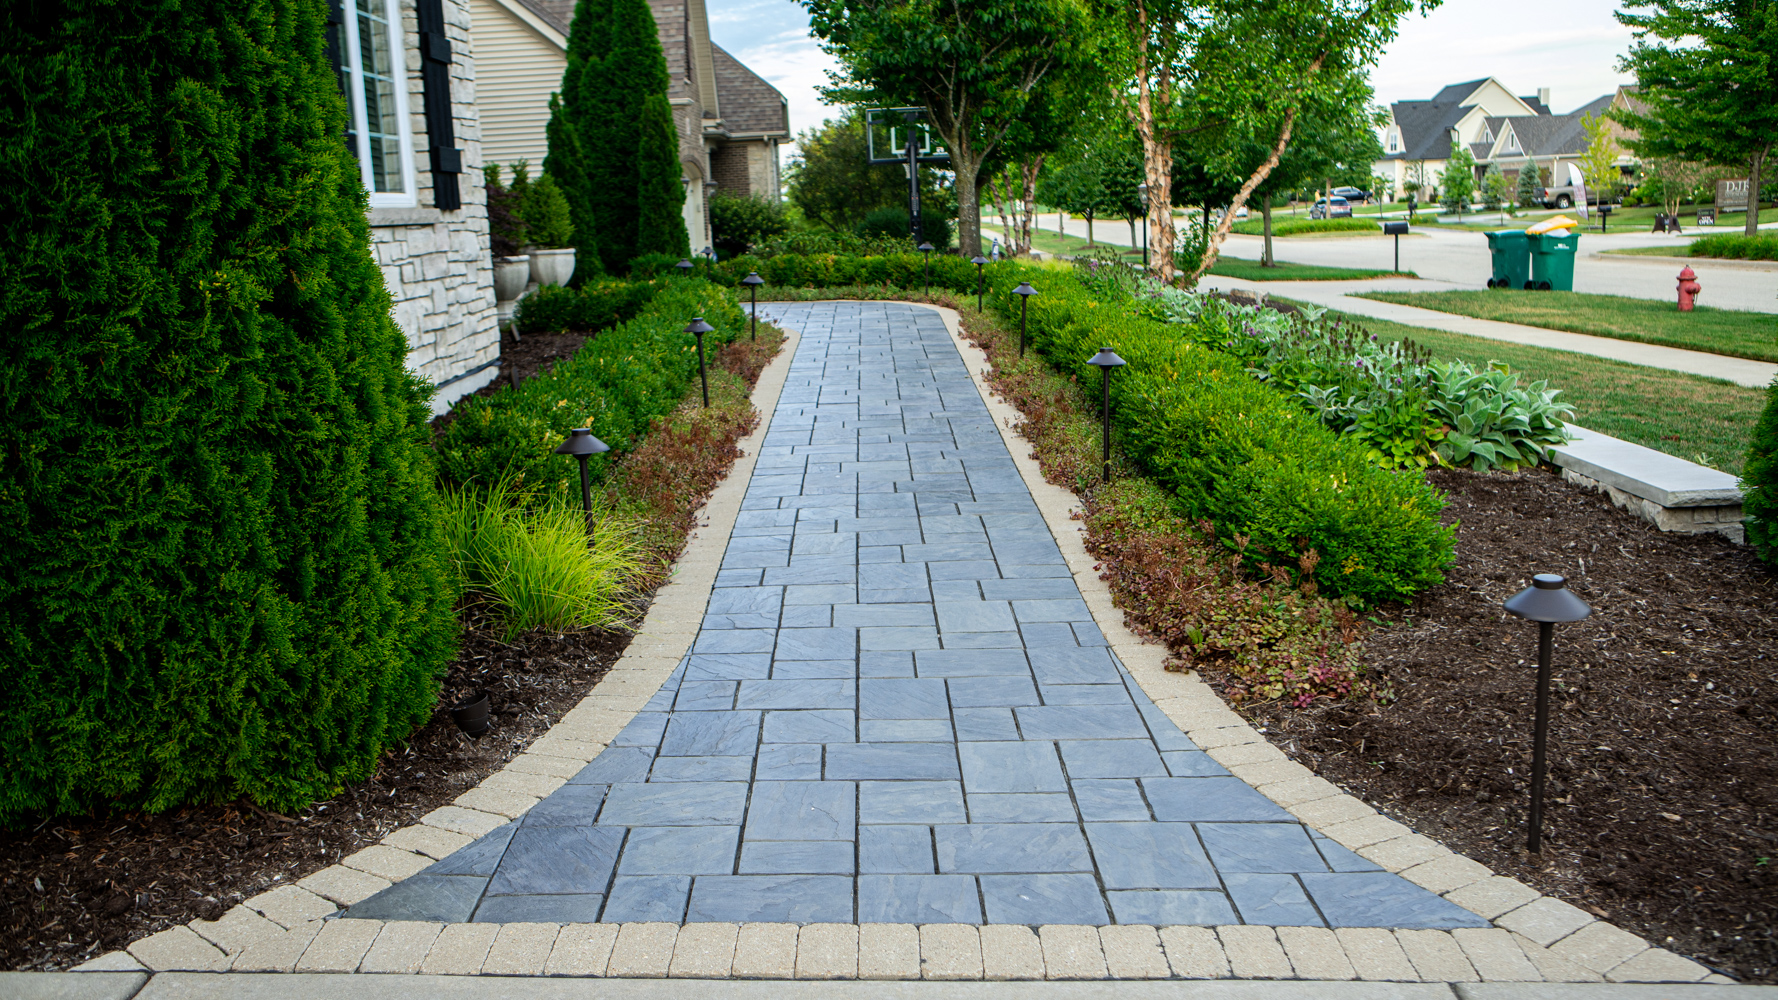 How Much Does a New Walkway Cost? It Depends on These 3 Factors